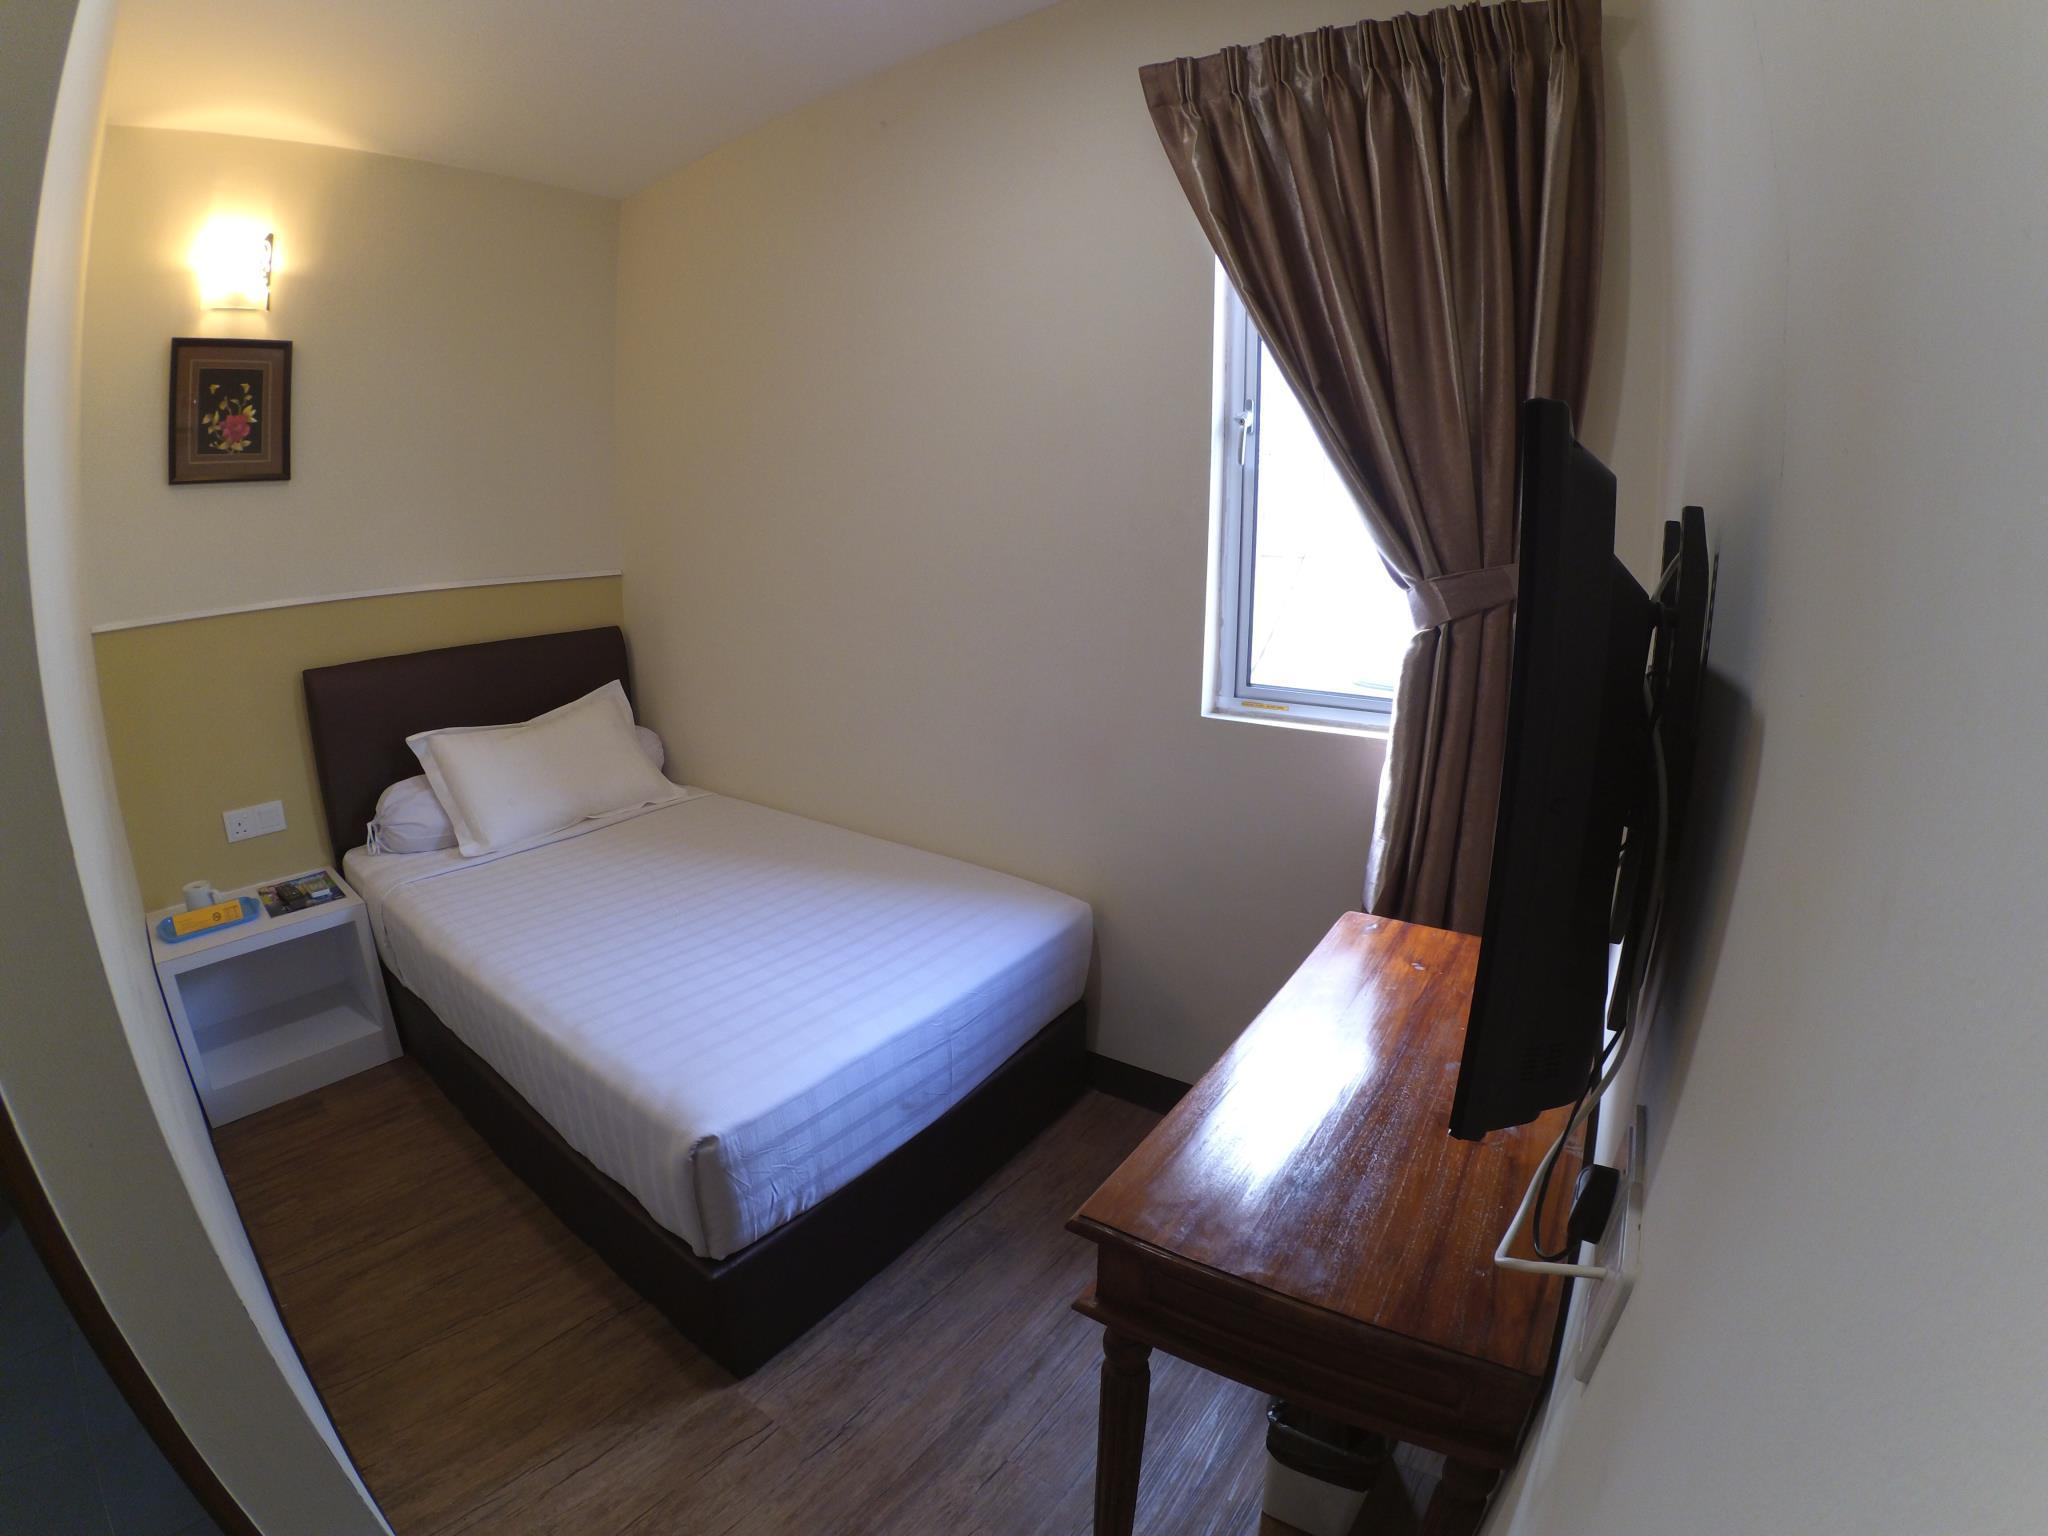 Standard Einzelzimmer (1 Person) (Standard Single Room (1 pax))